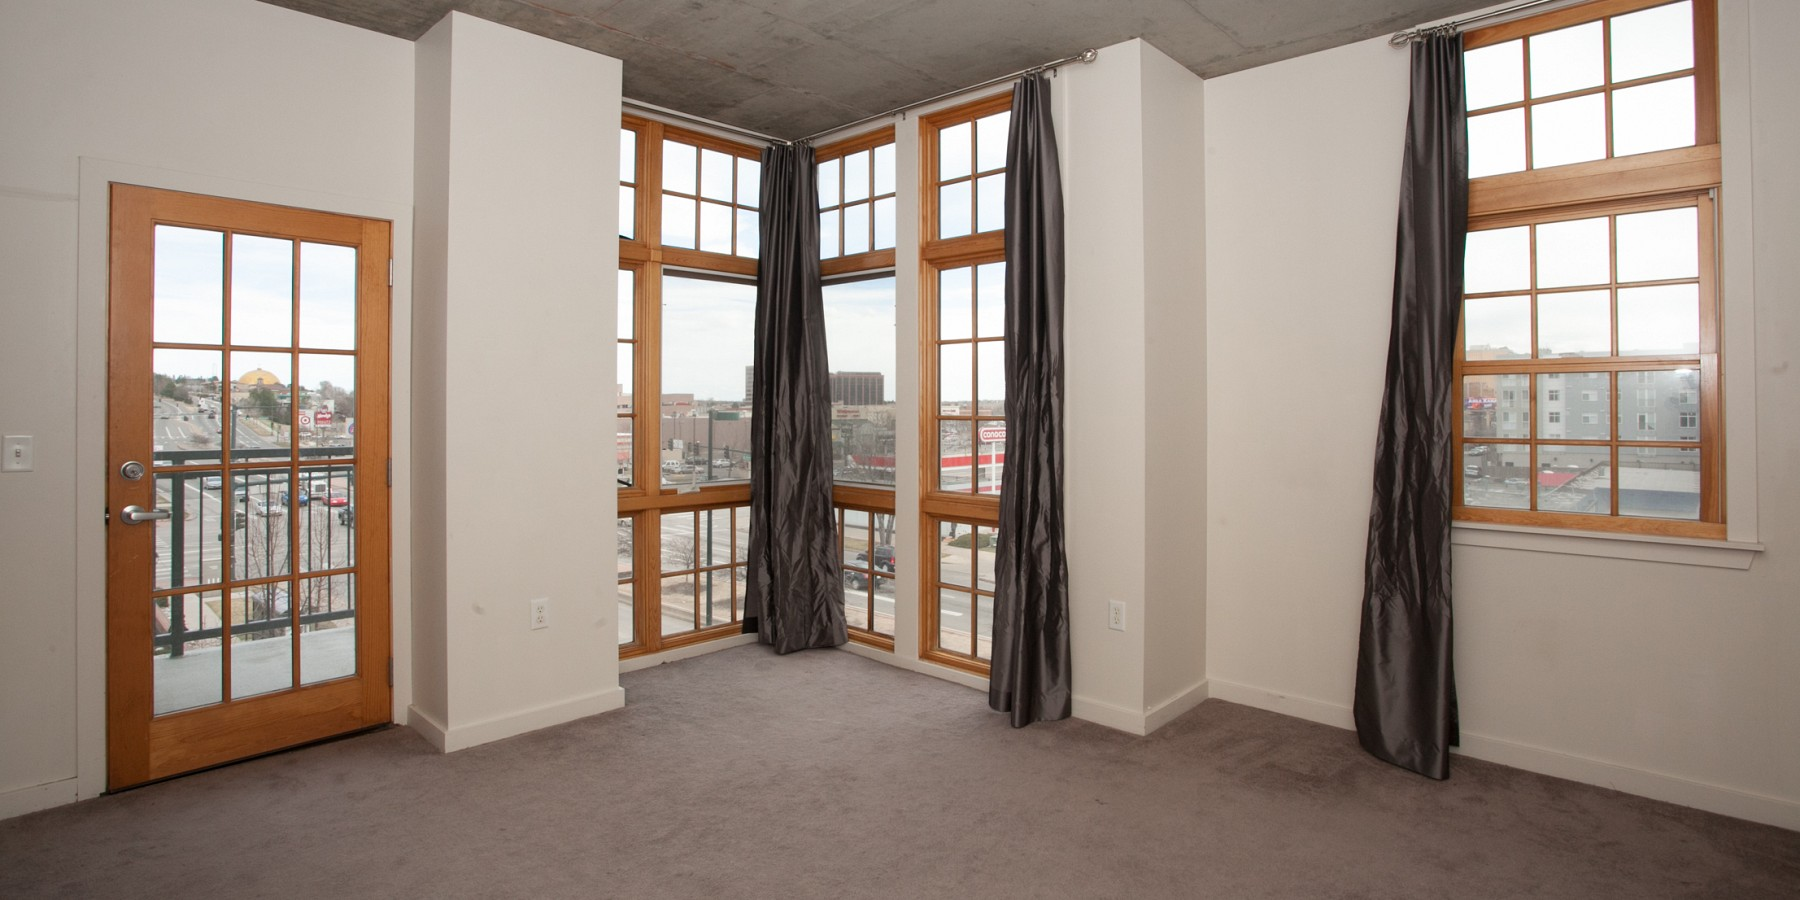 275 South Harrison Street #401, Denver, CO 80209